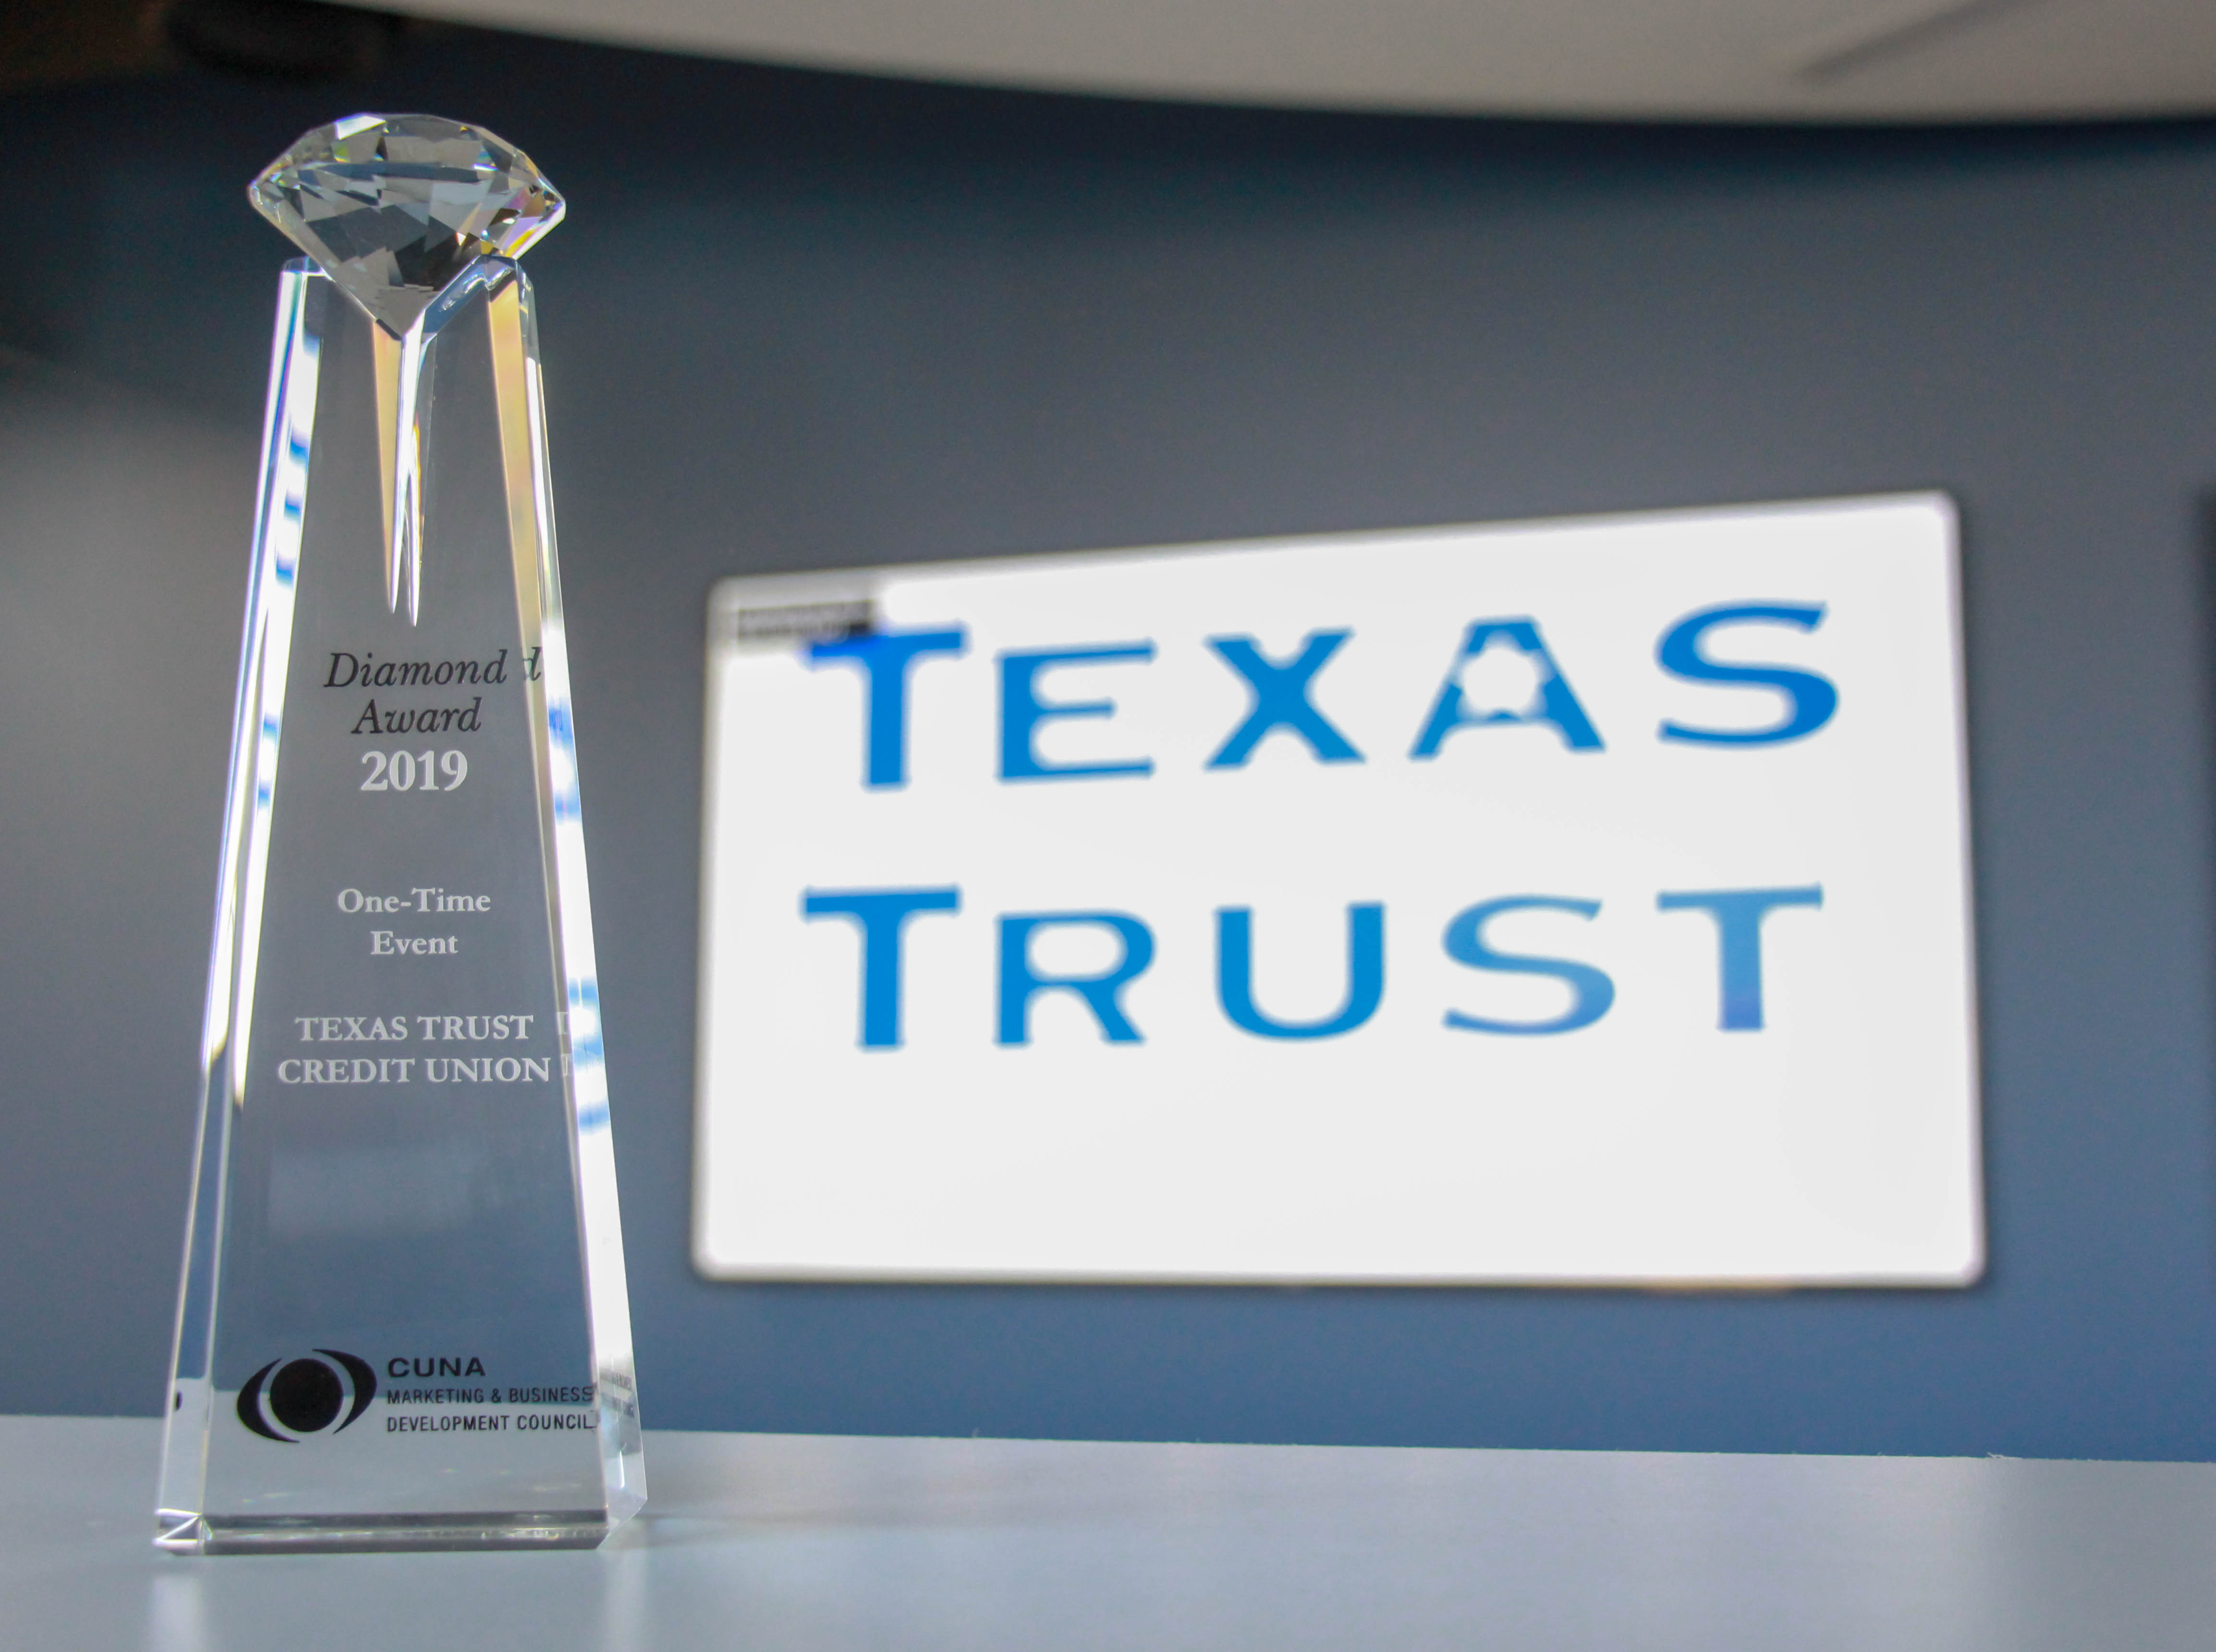 Texas Trust Credit Union receives 2019 Diamond Award for One-Time Event March 2019